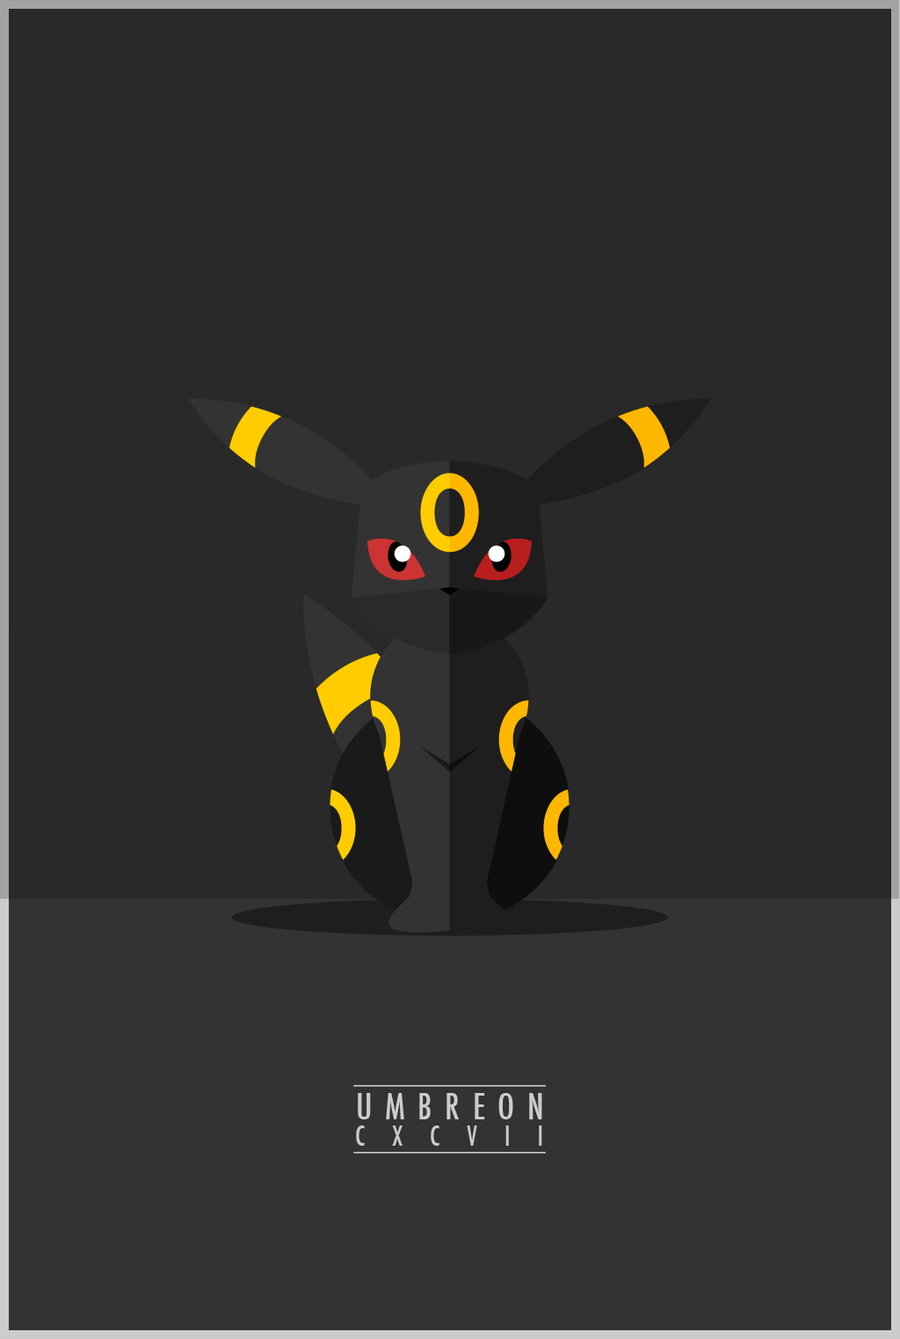 Umbreon : CXCVII by WEAPONIX.deviantart.com on @DeviantArt